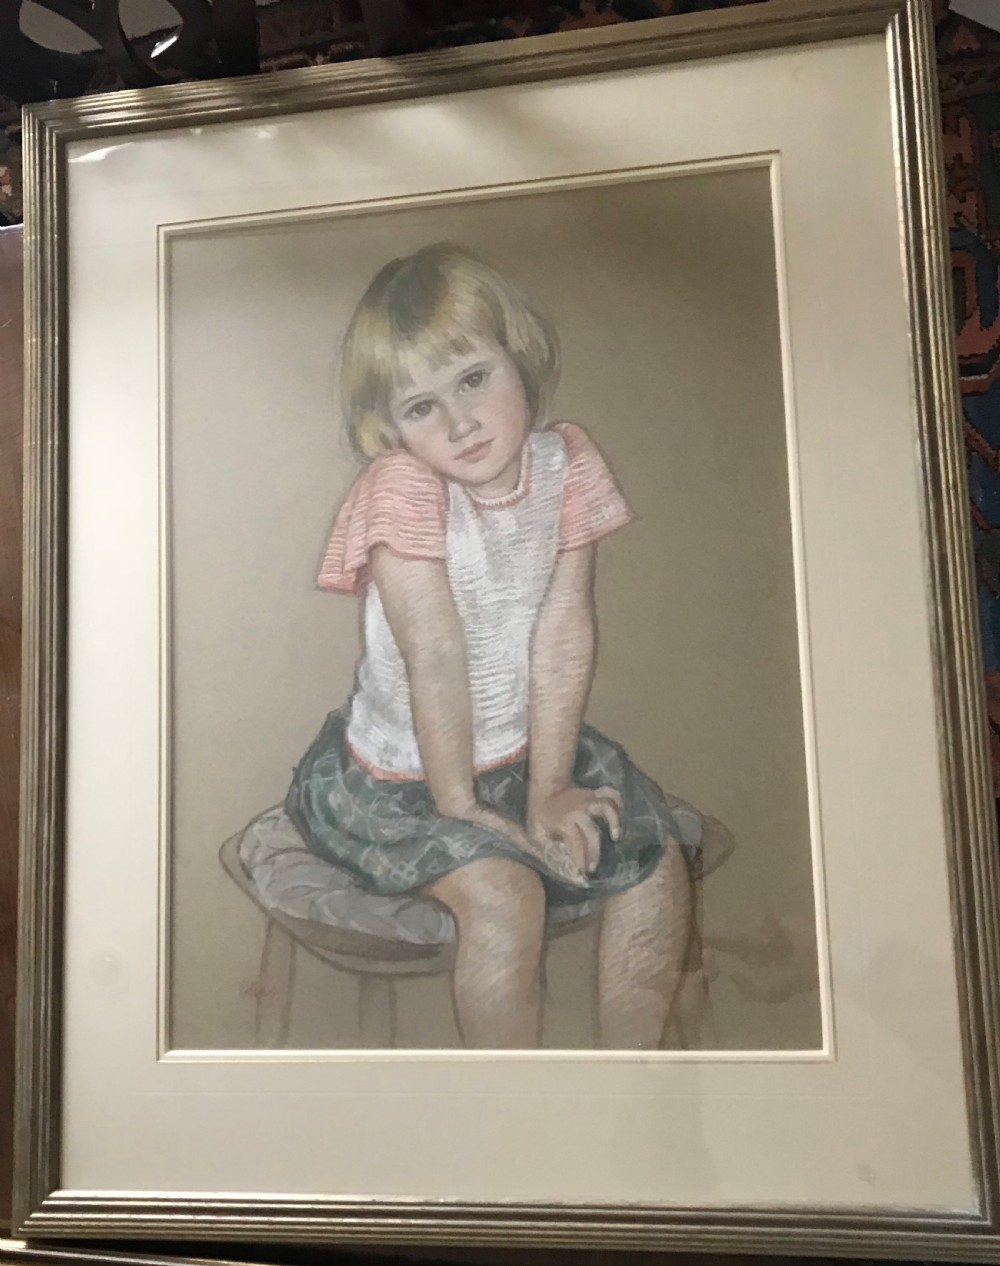 emma young the reluctant sitter c1950 by dorothy colles